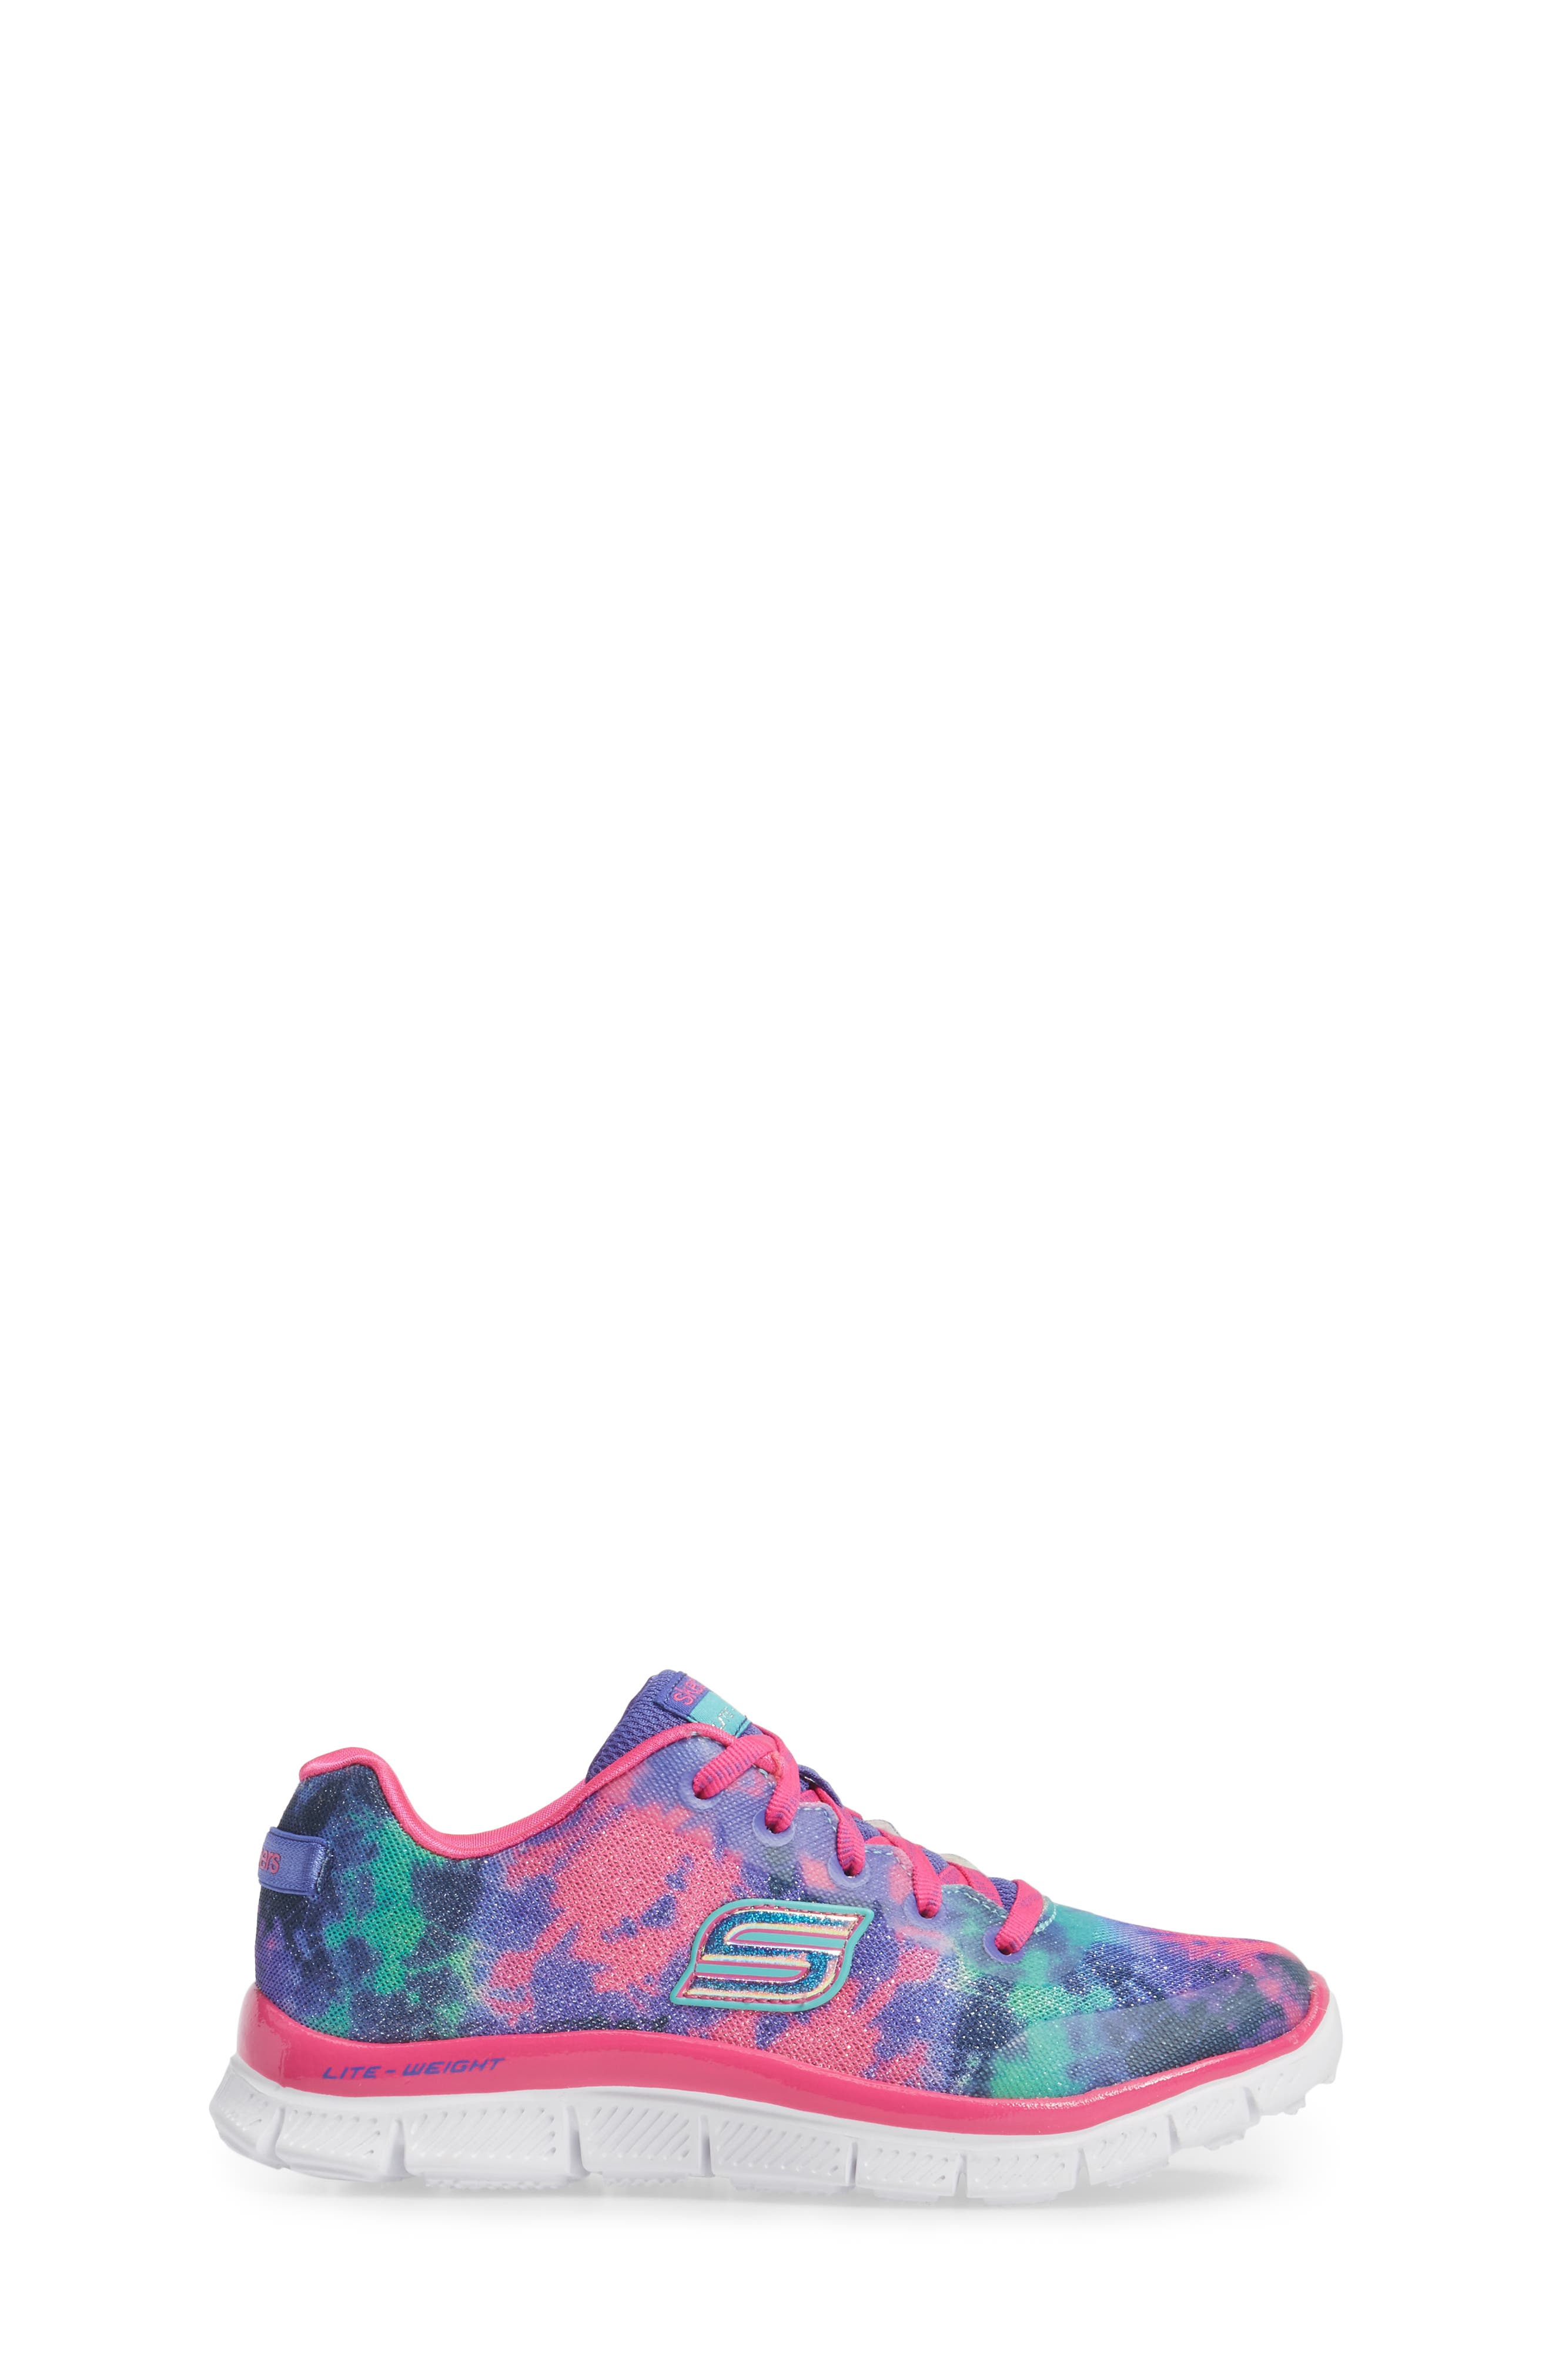 Skech Appeal Groove Thang Sneaker,                             Alternate thumbnail 3, color,                             650